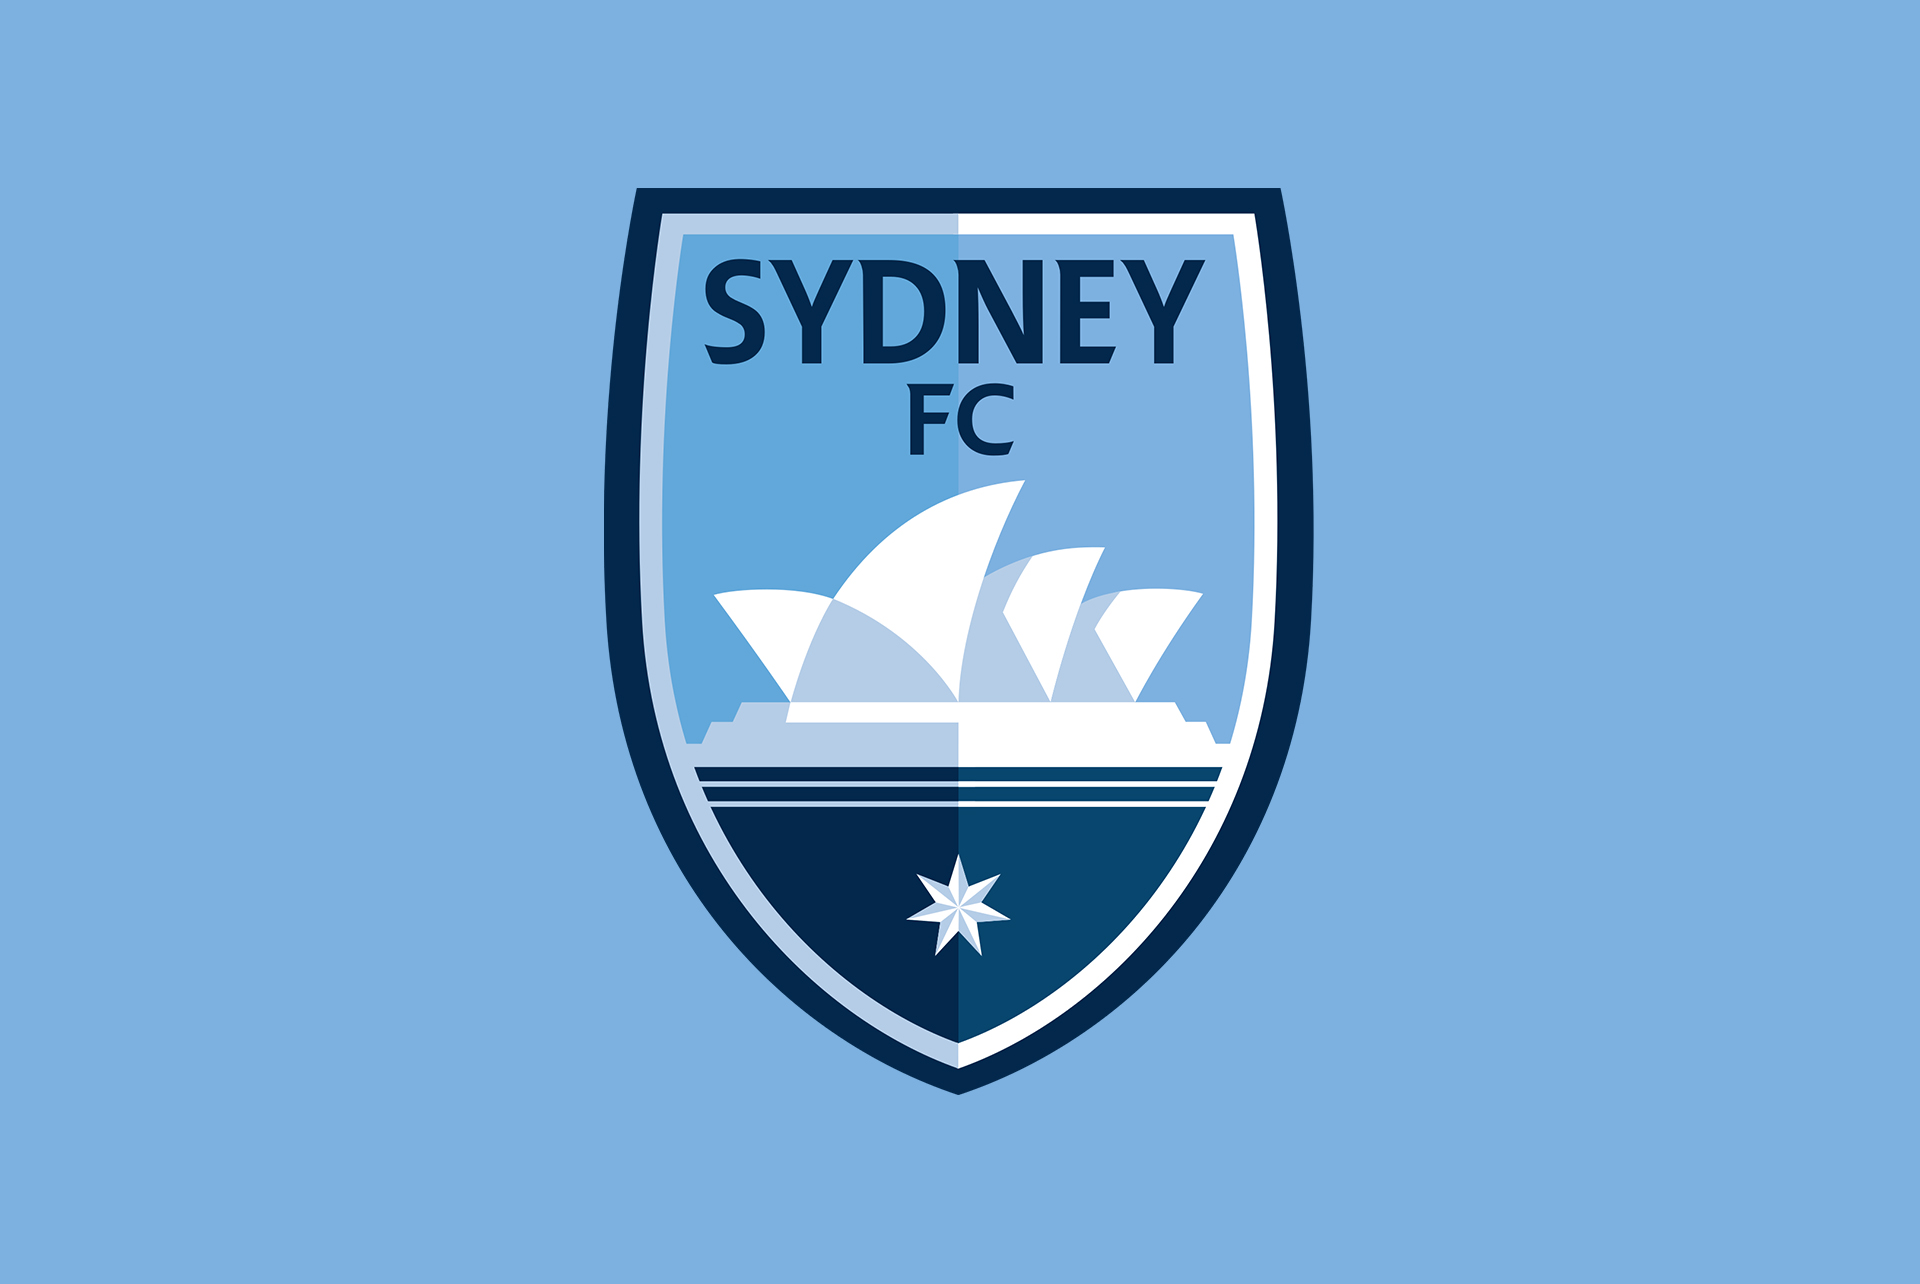 Best Football Logos Sydney FC